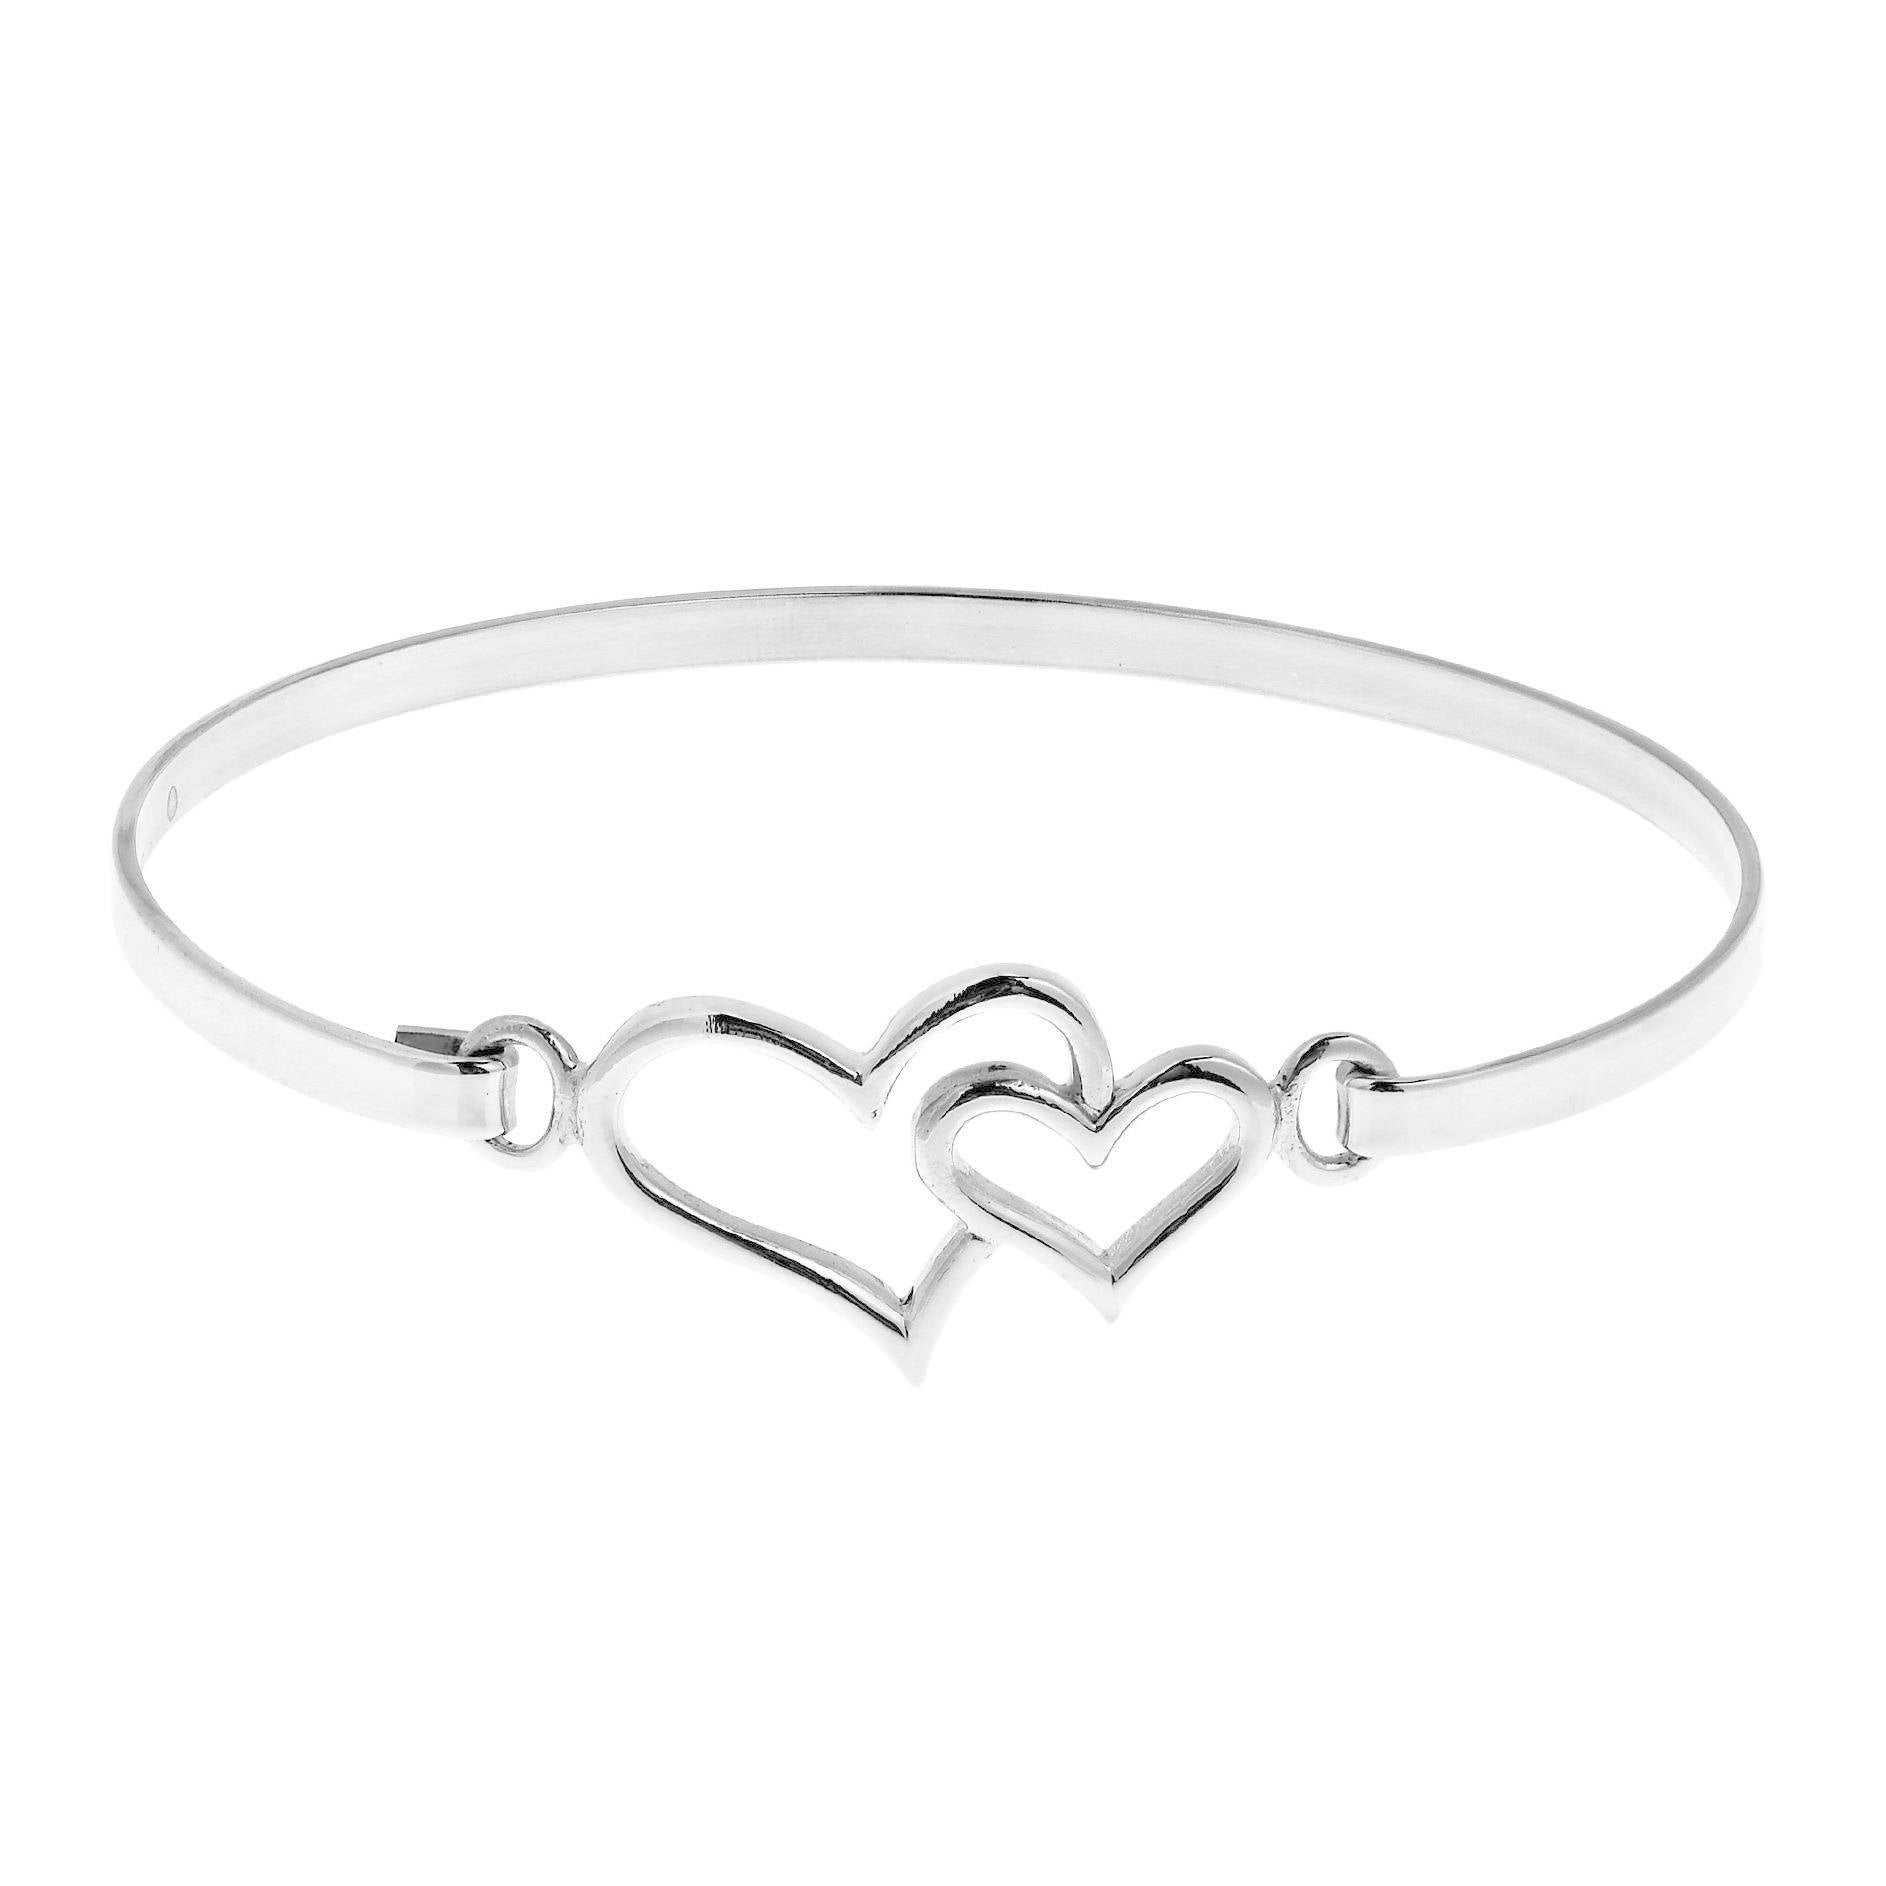 Handmade Double Heart One Love 925 Sterling Silver Bangle Bracelet Thailand On Free Shipping Orders Over 45 10532667